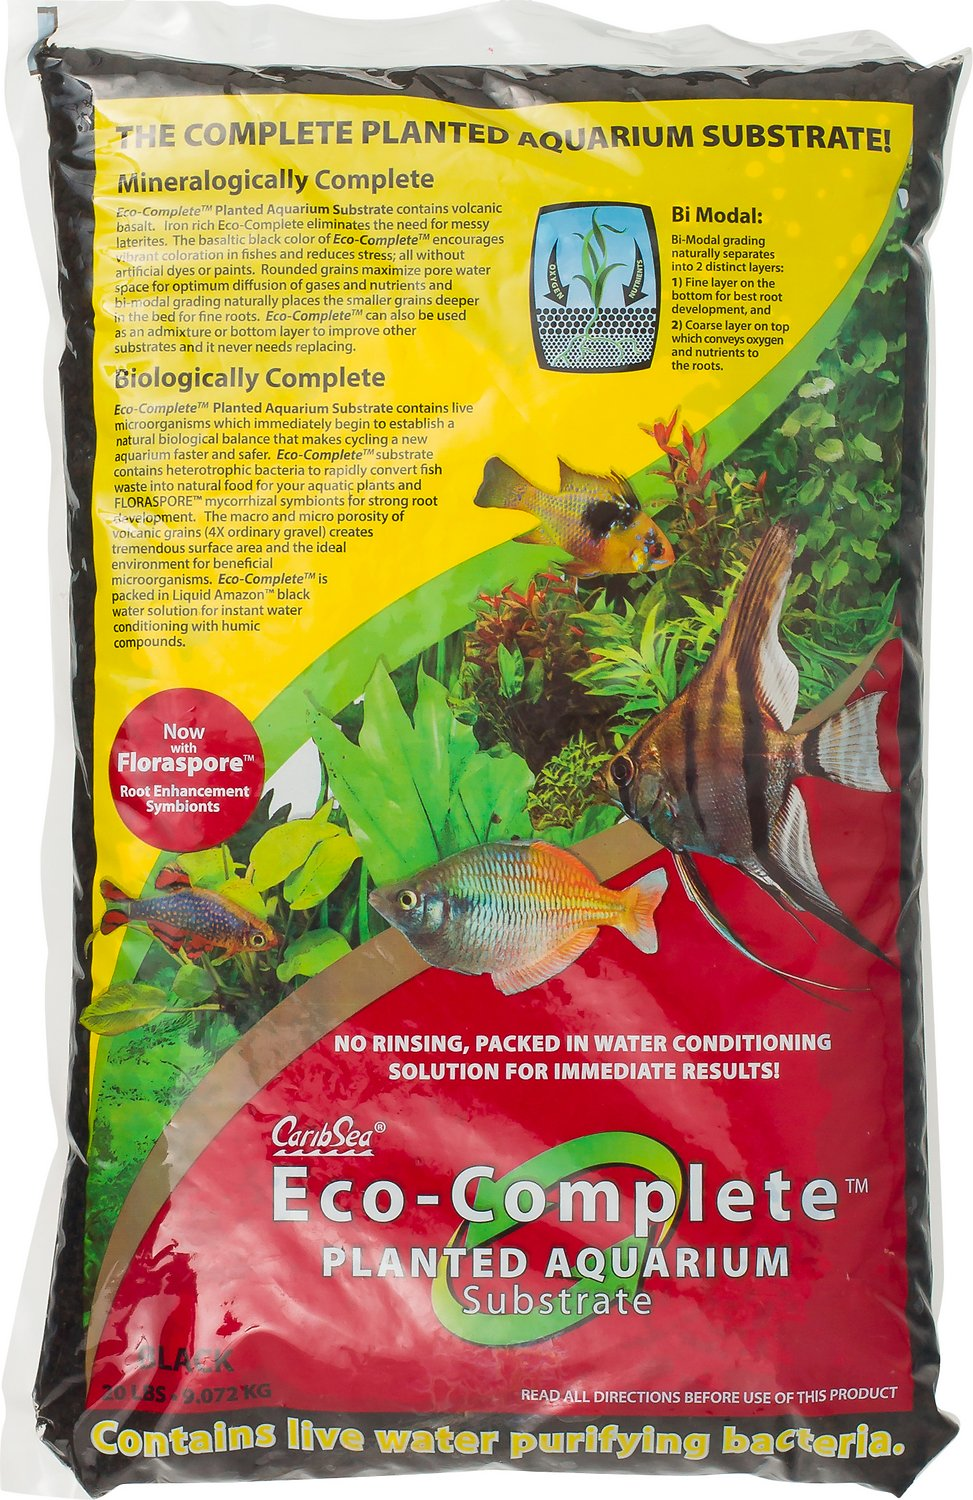 caribsea eco complete planted aquarium substrate black 20 lb bag